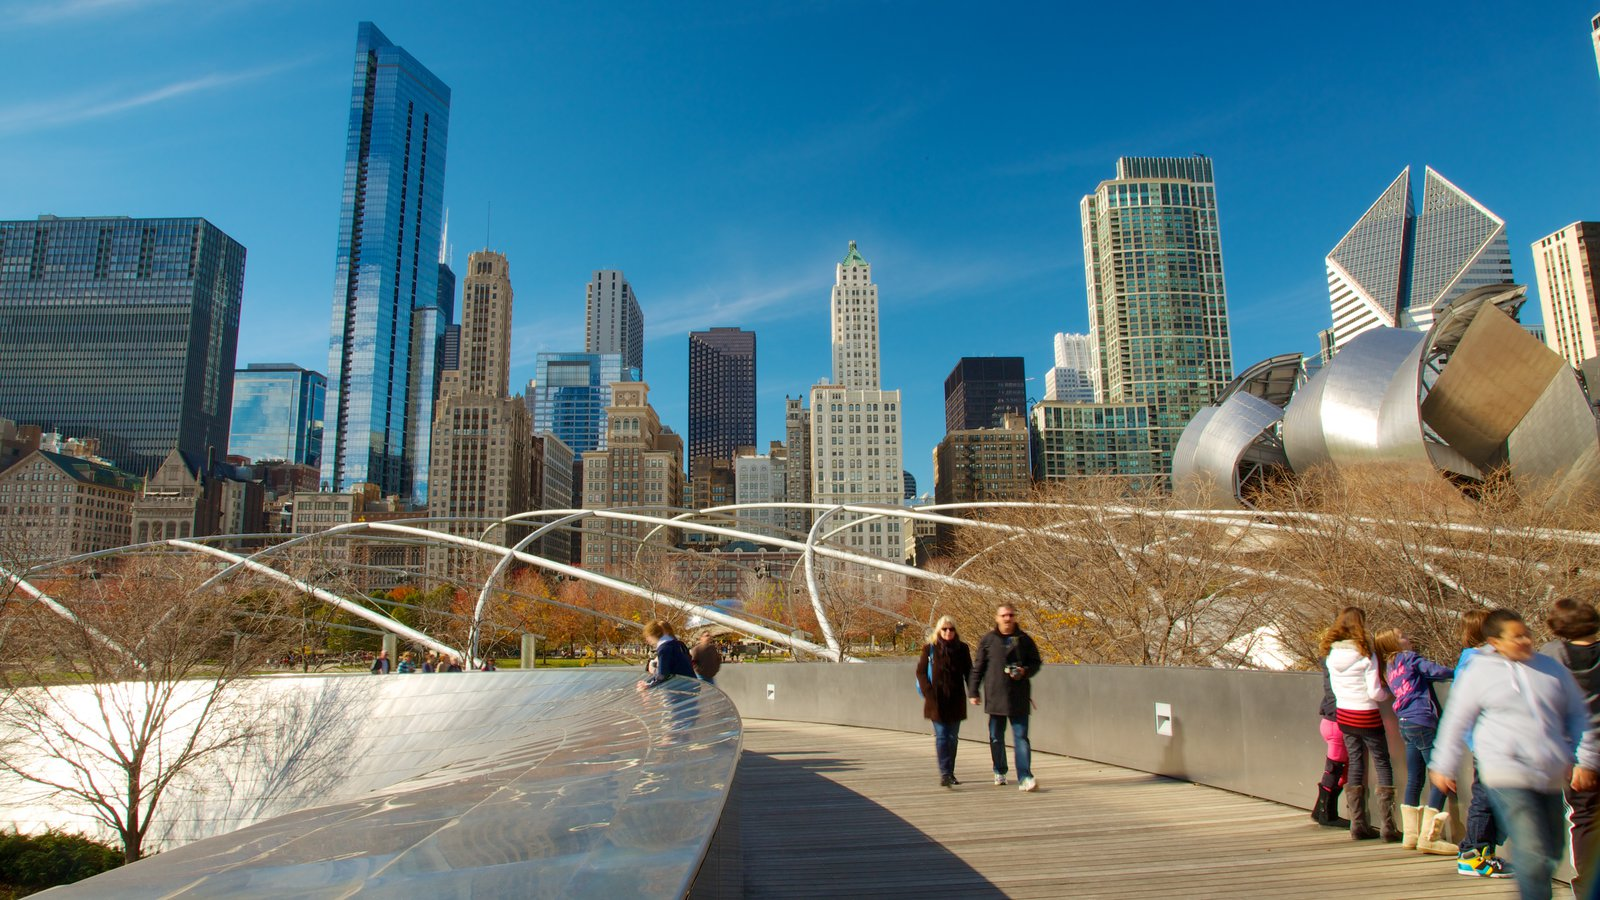 Chicago Modern Architecture chicago pictures: view photos & images of chicago